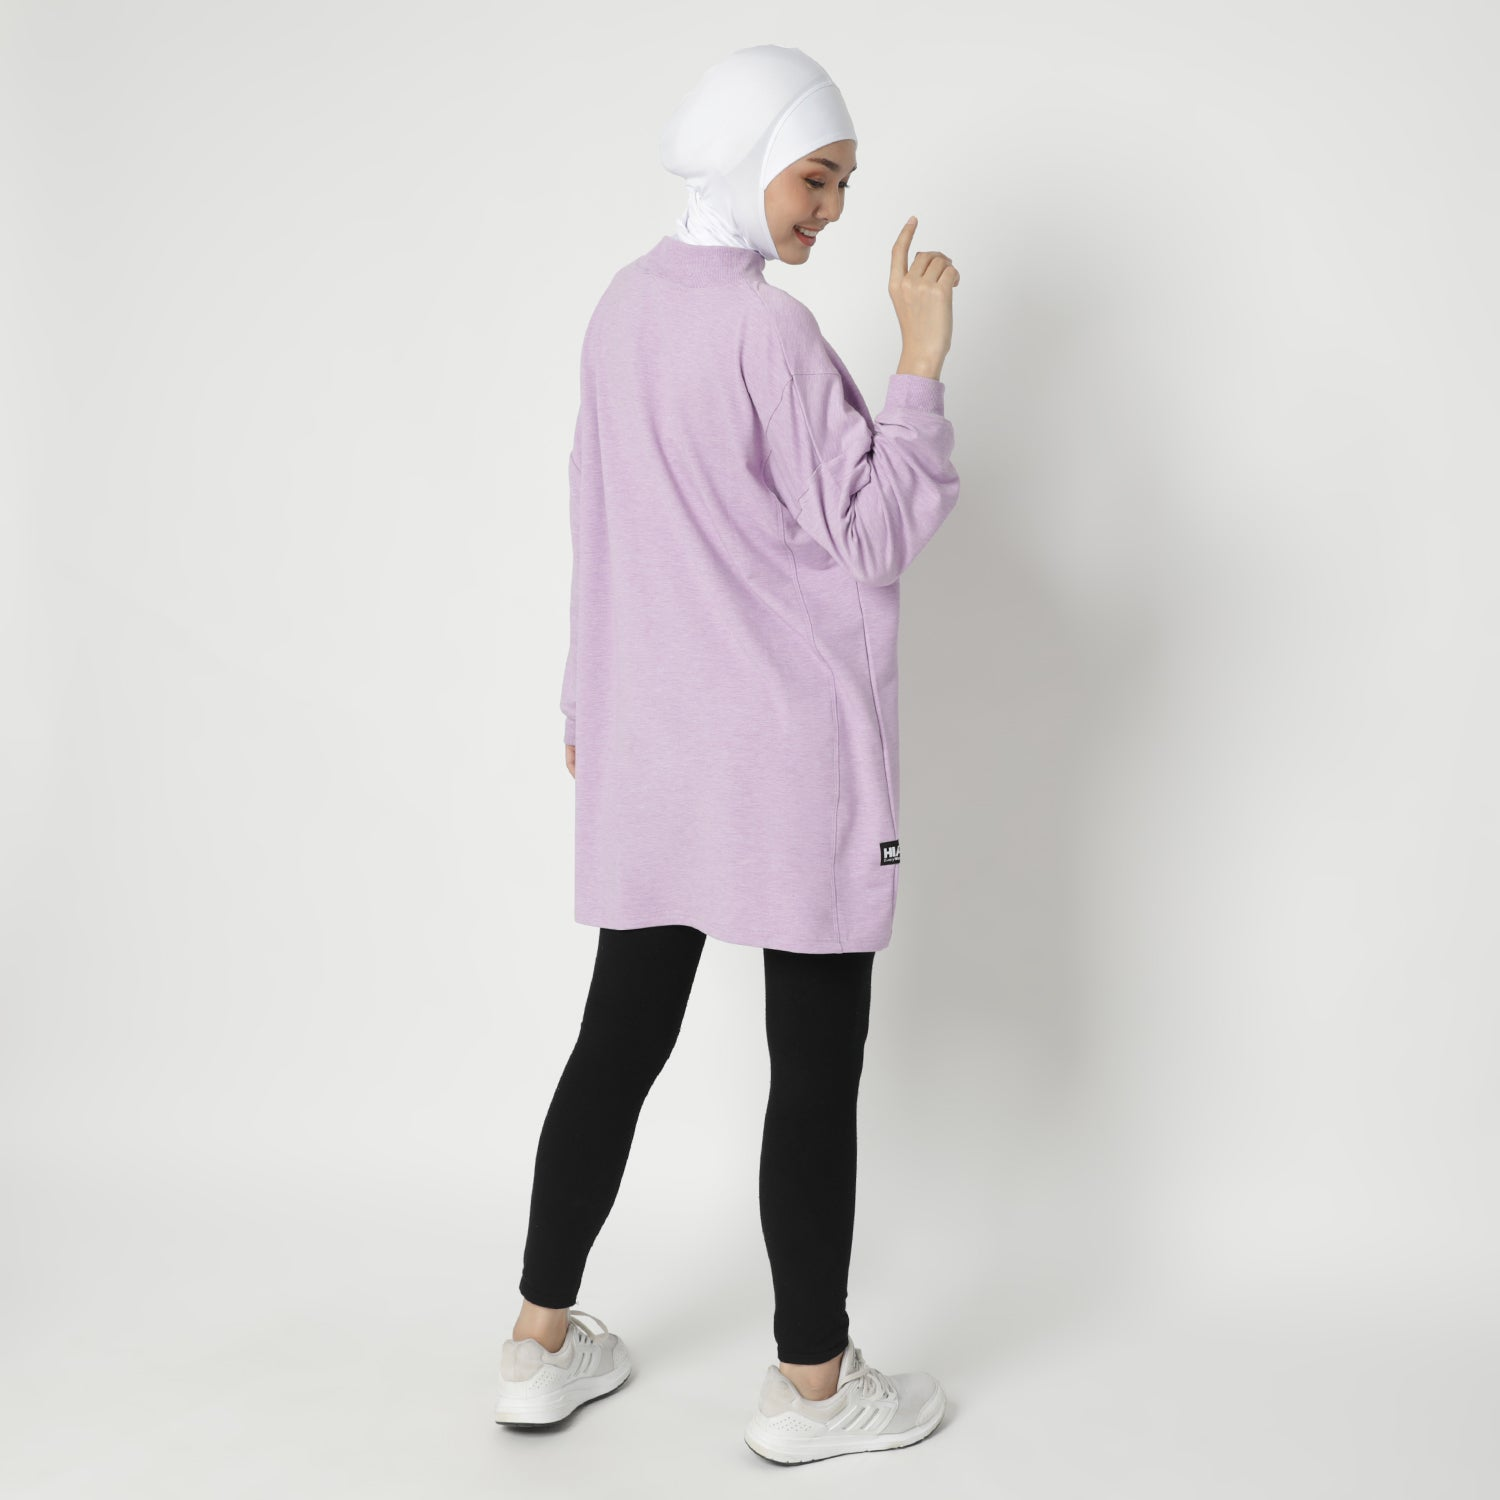 Daleeya Oversized Top - Lavender Smoke